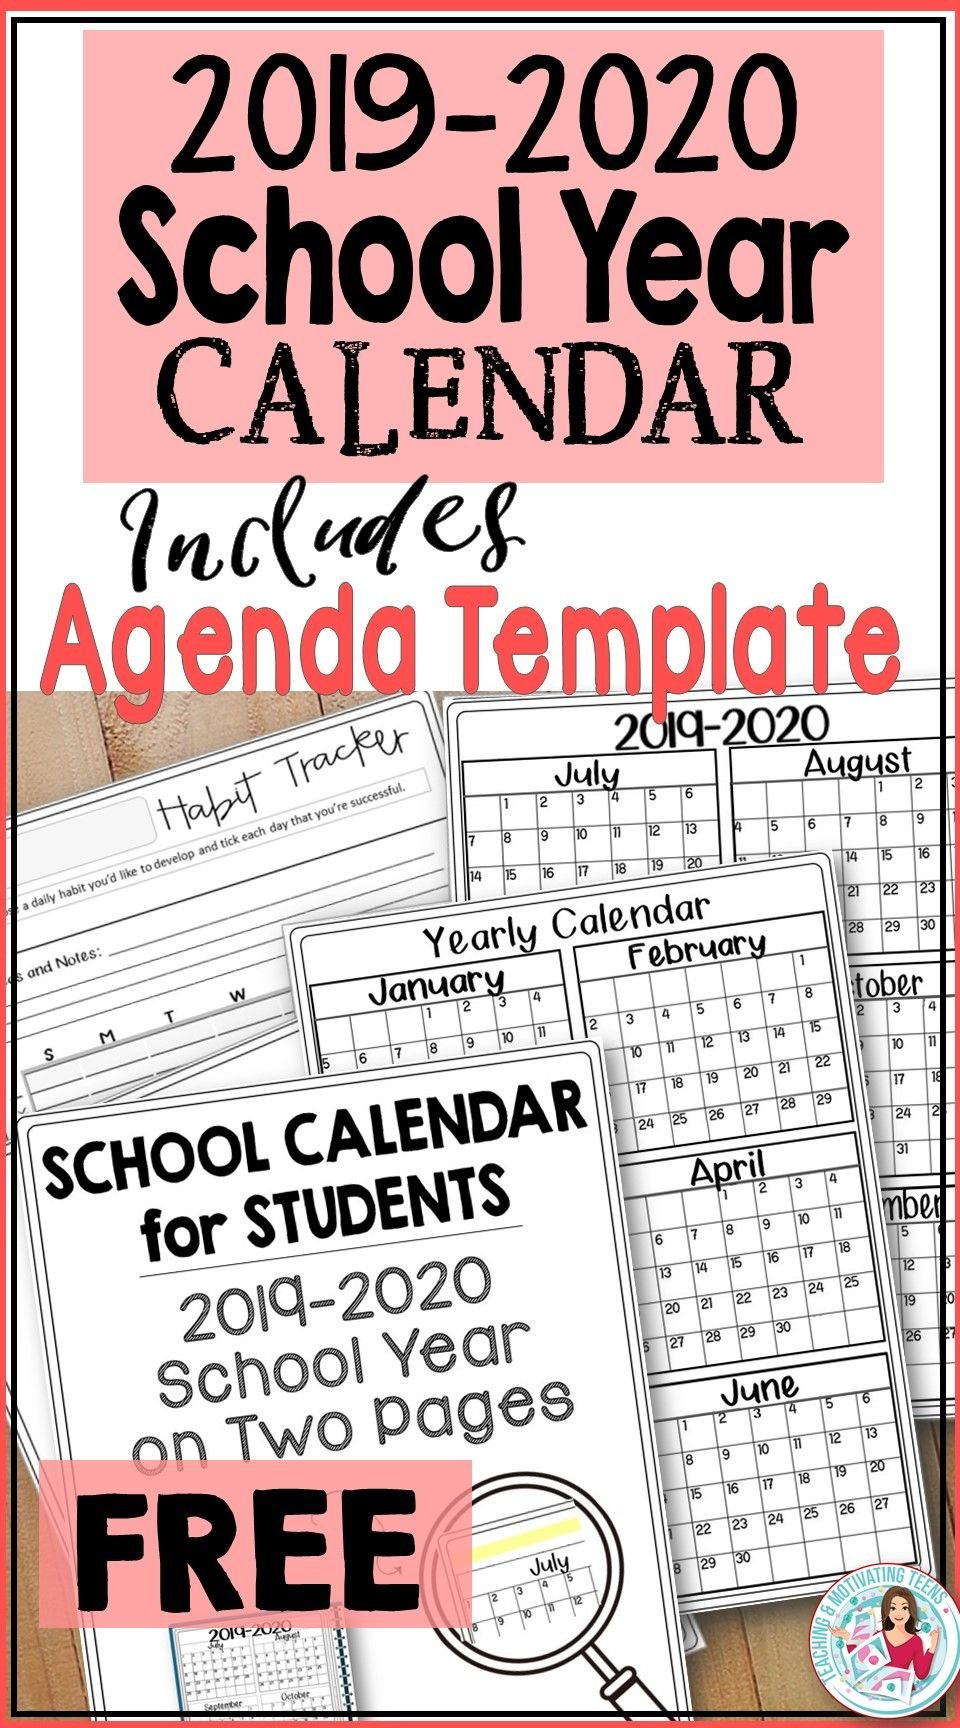 2019-2020 Back-To-School Calendar For Students & Teachers Free School Calendars For Teachers